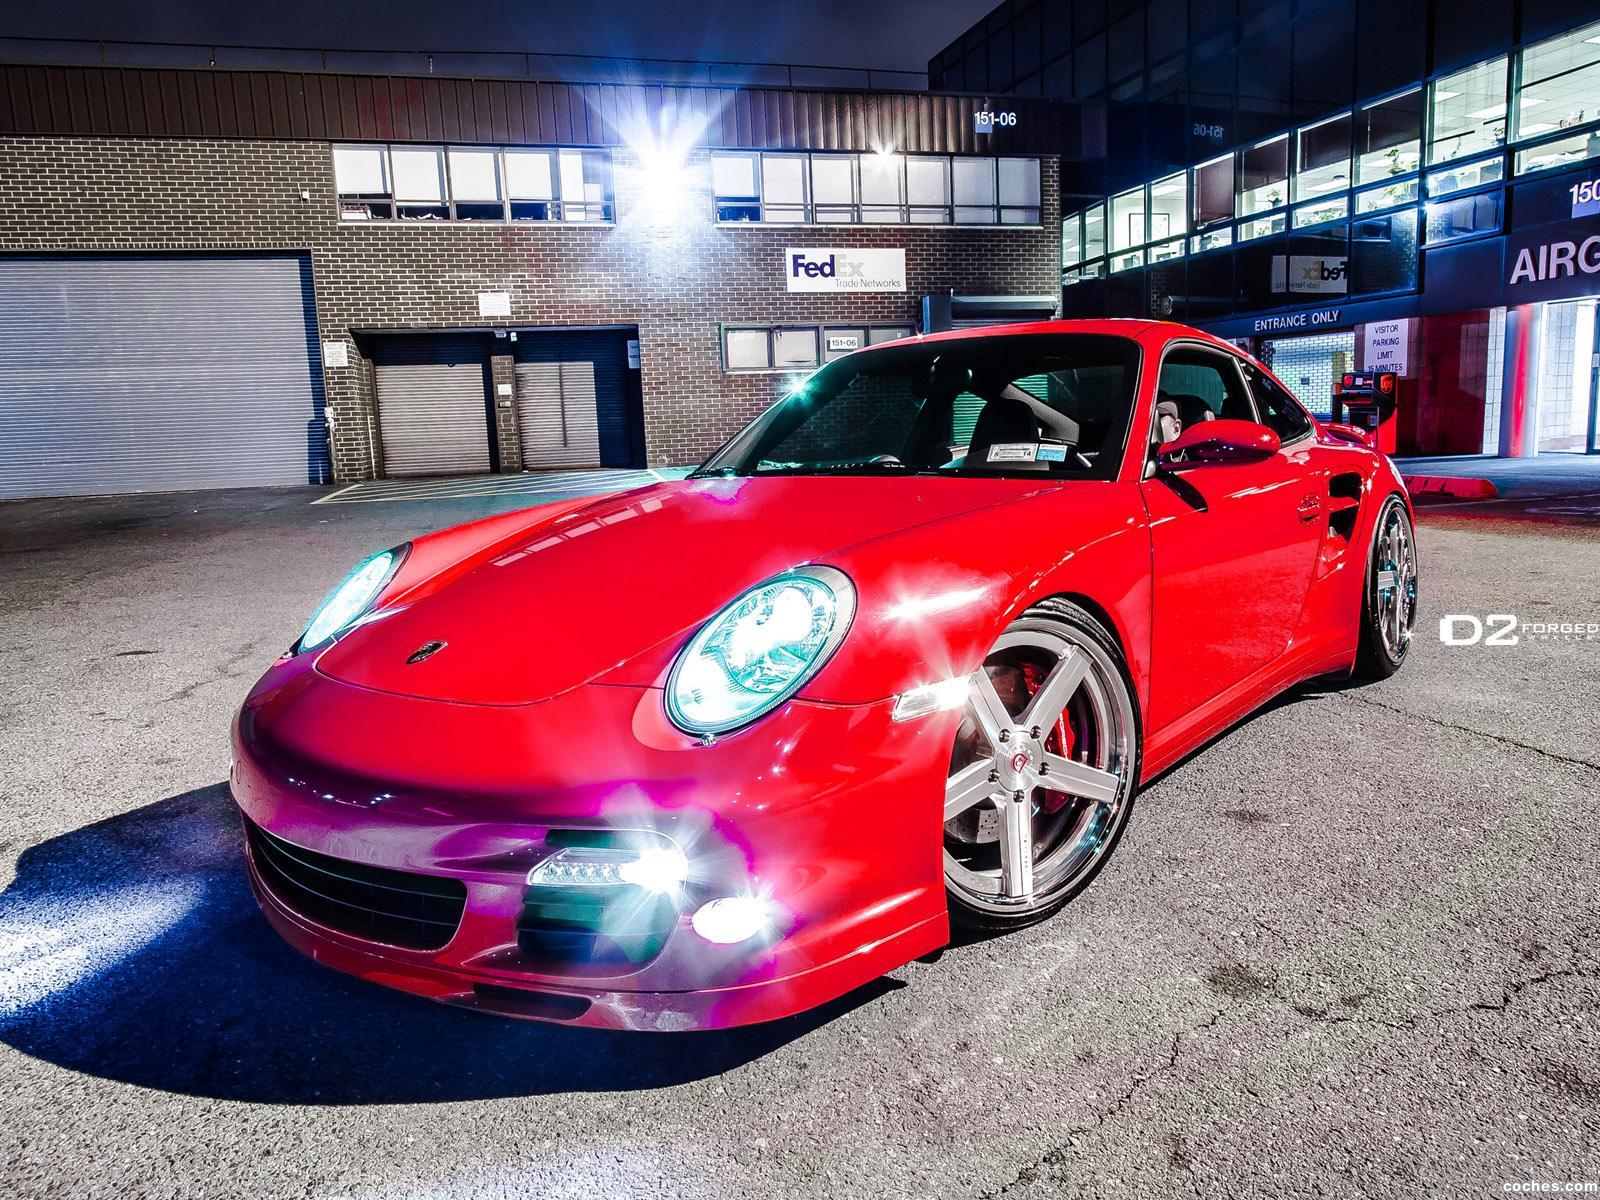 Foto 0 de Porsche 911 Turbo 997 D2Forged CV2 2012